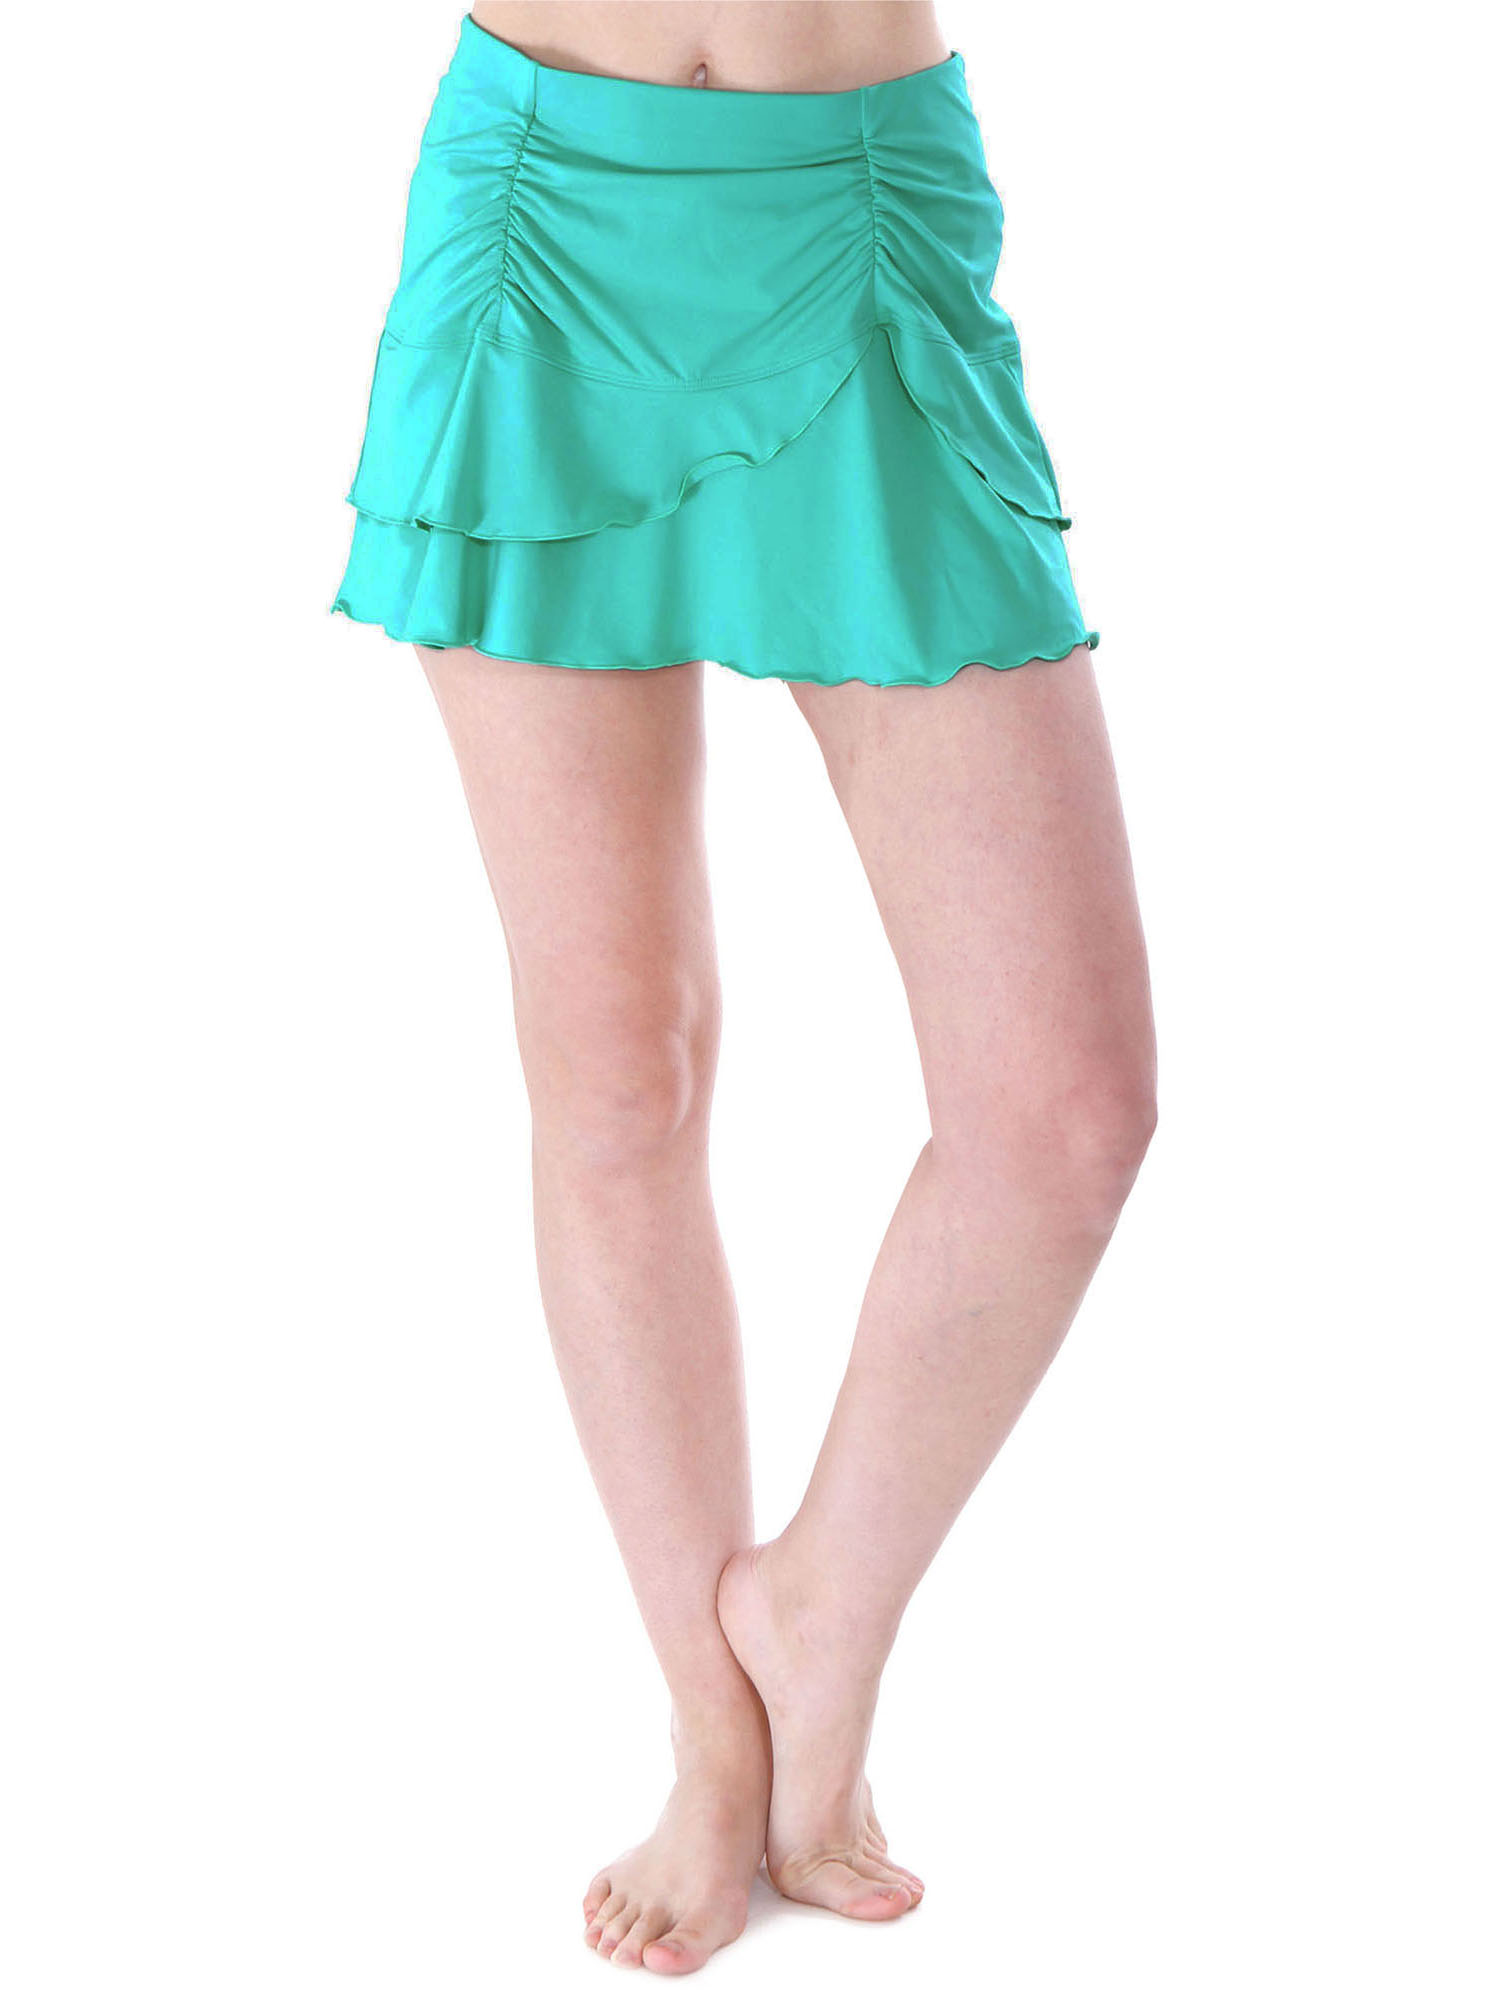 Women's Solid Ruffle Layered Swimsuit Beach Cover Up Skirt, Catalina Green, XL